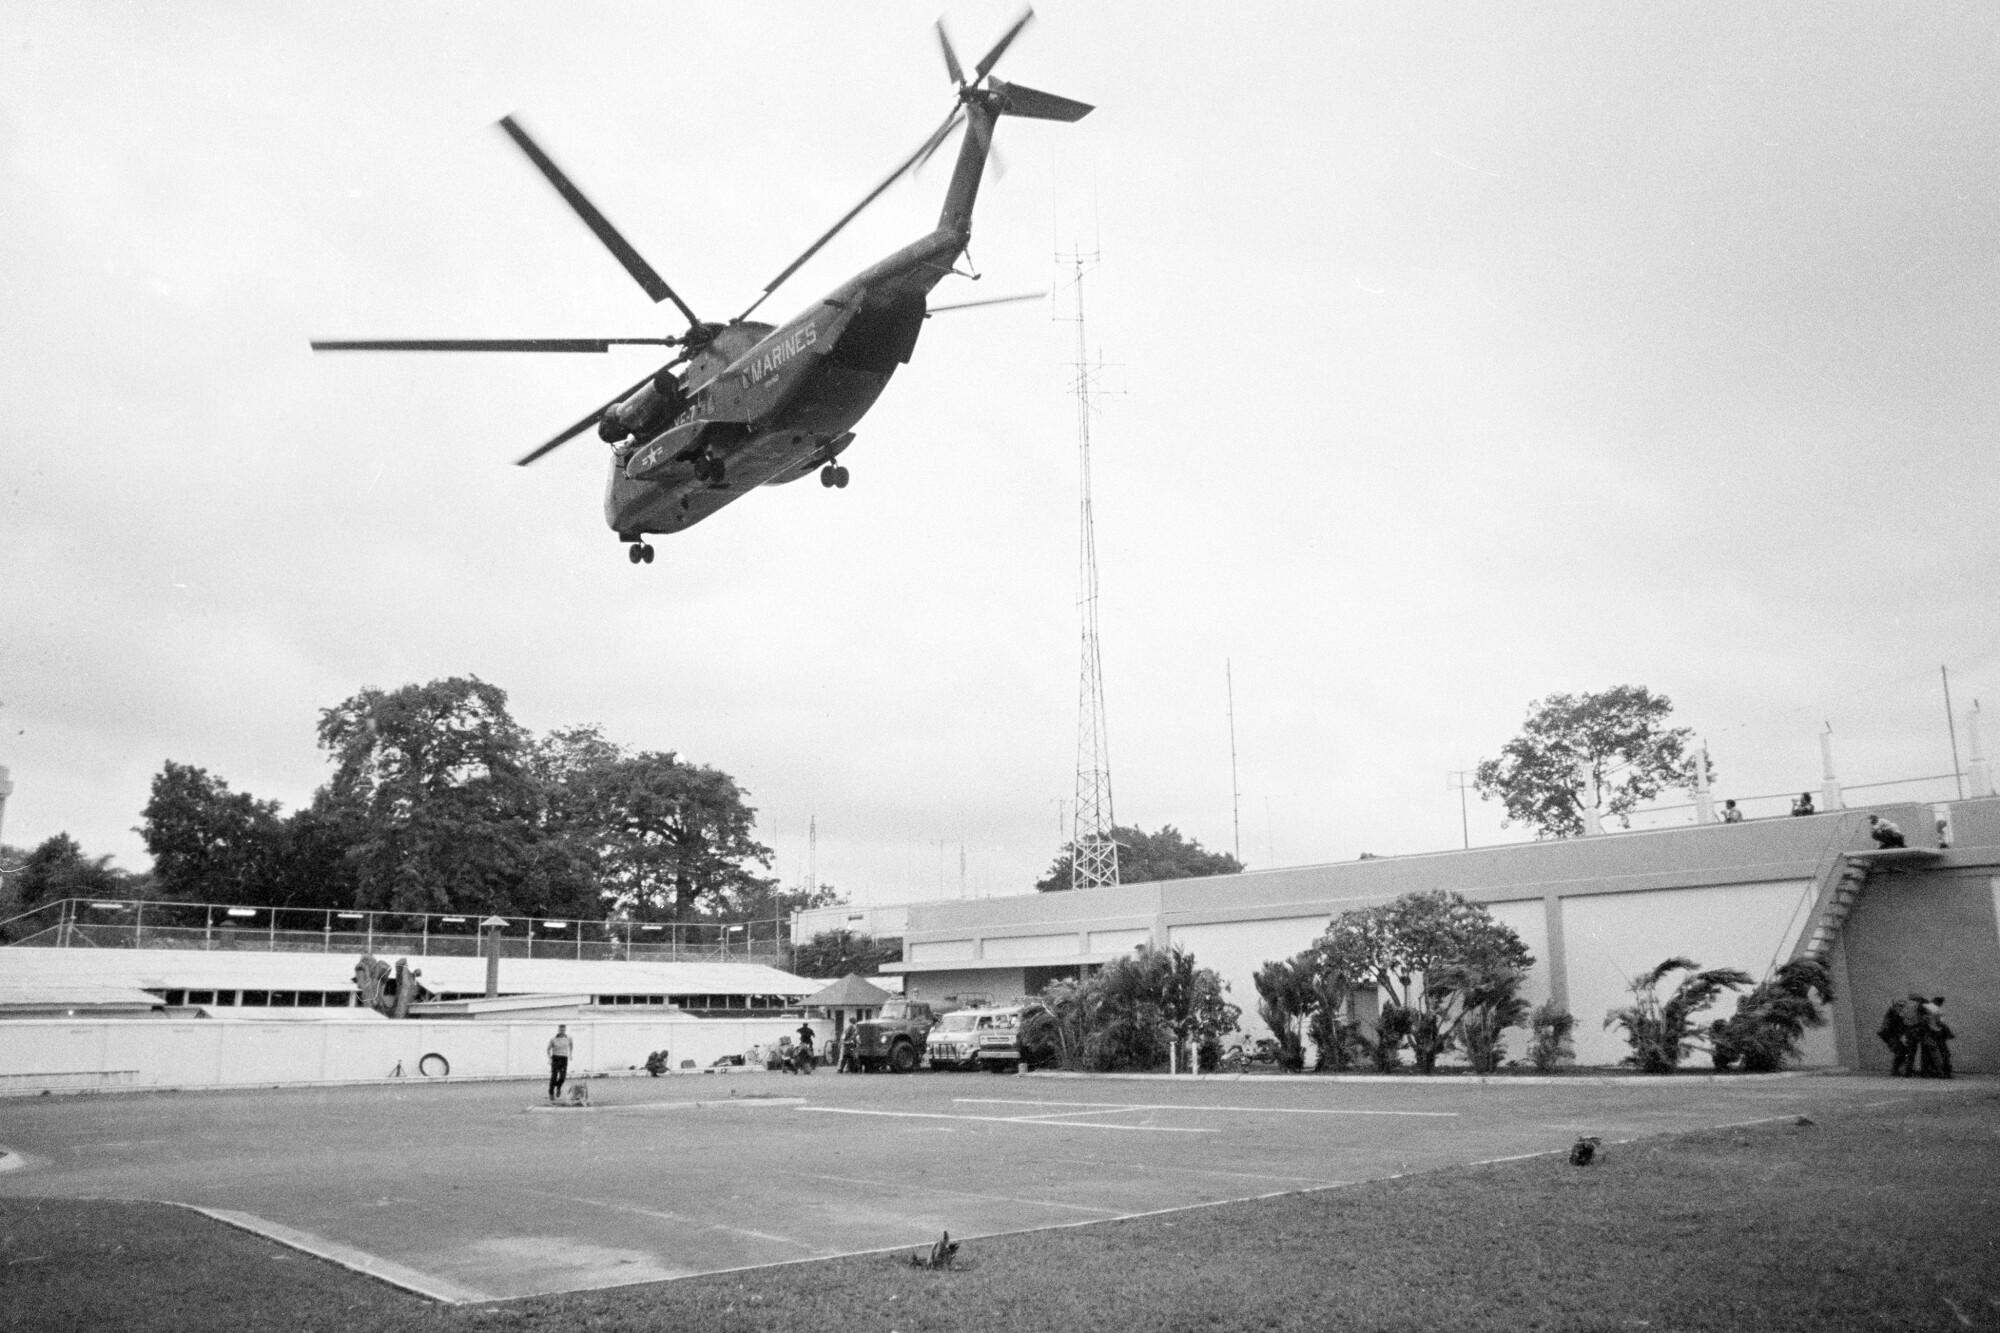 The helicopter zone at the U.S. Embassy in Saigon, Vietnam